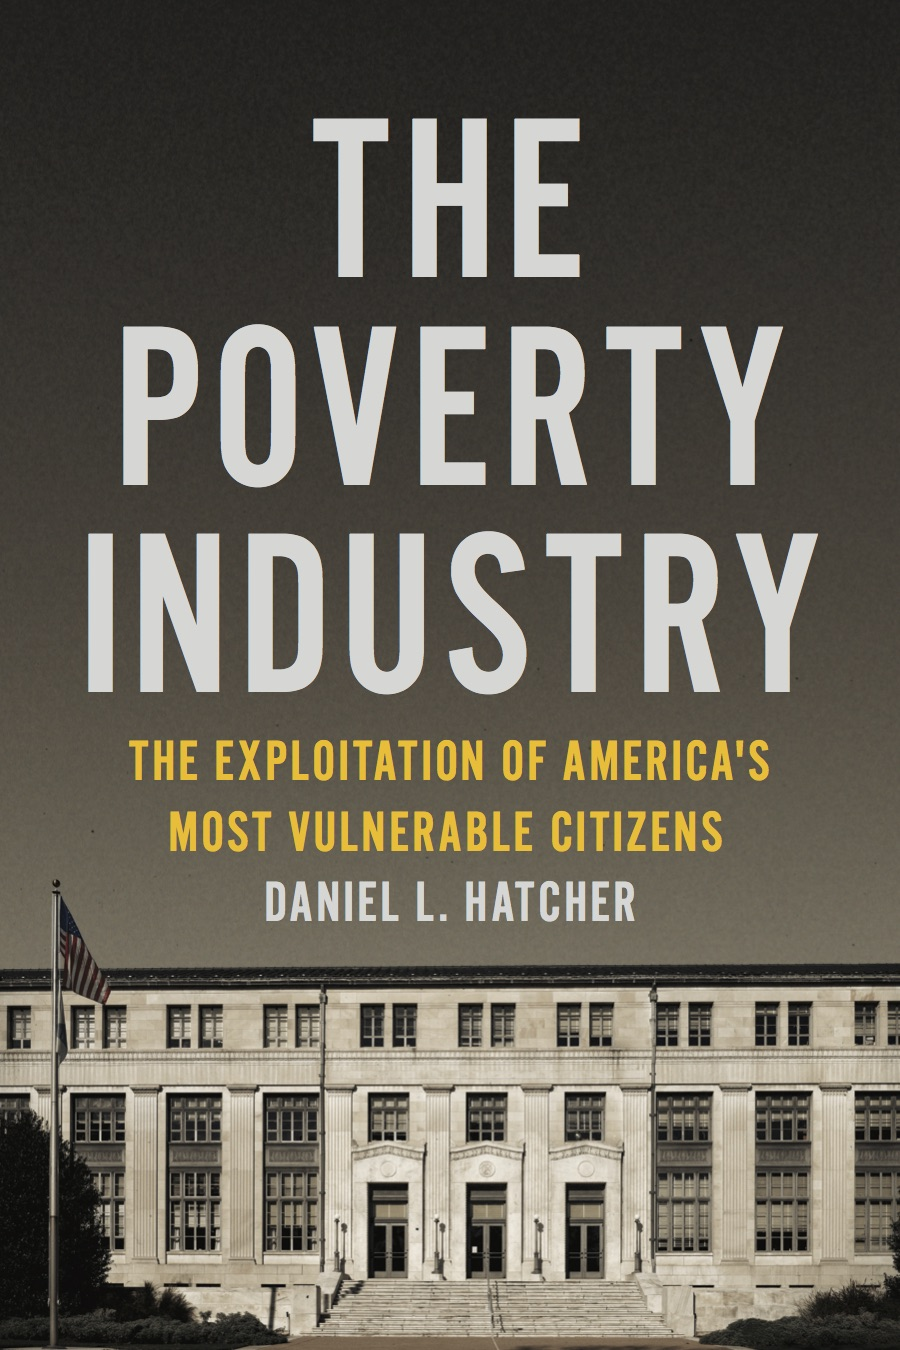 Celebrate the publication of Prof. Dan Hatcher's new book,